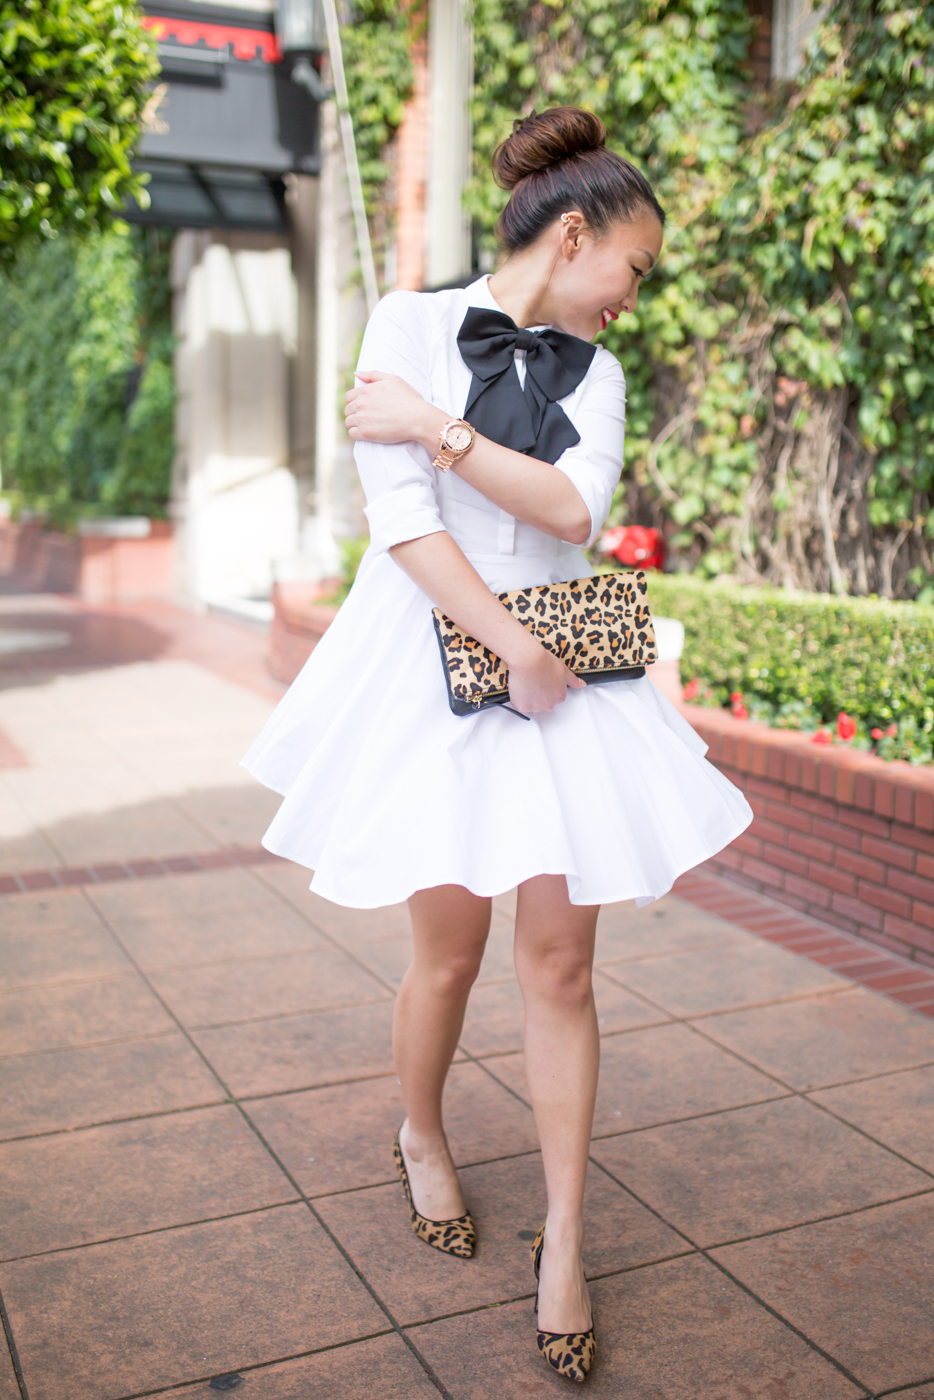 Express Fit & Flare Shirt Dress with Leopard Details | via The Chic Diary